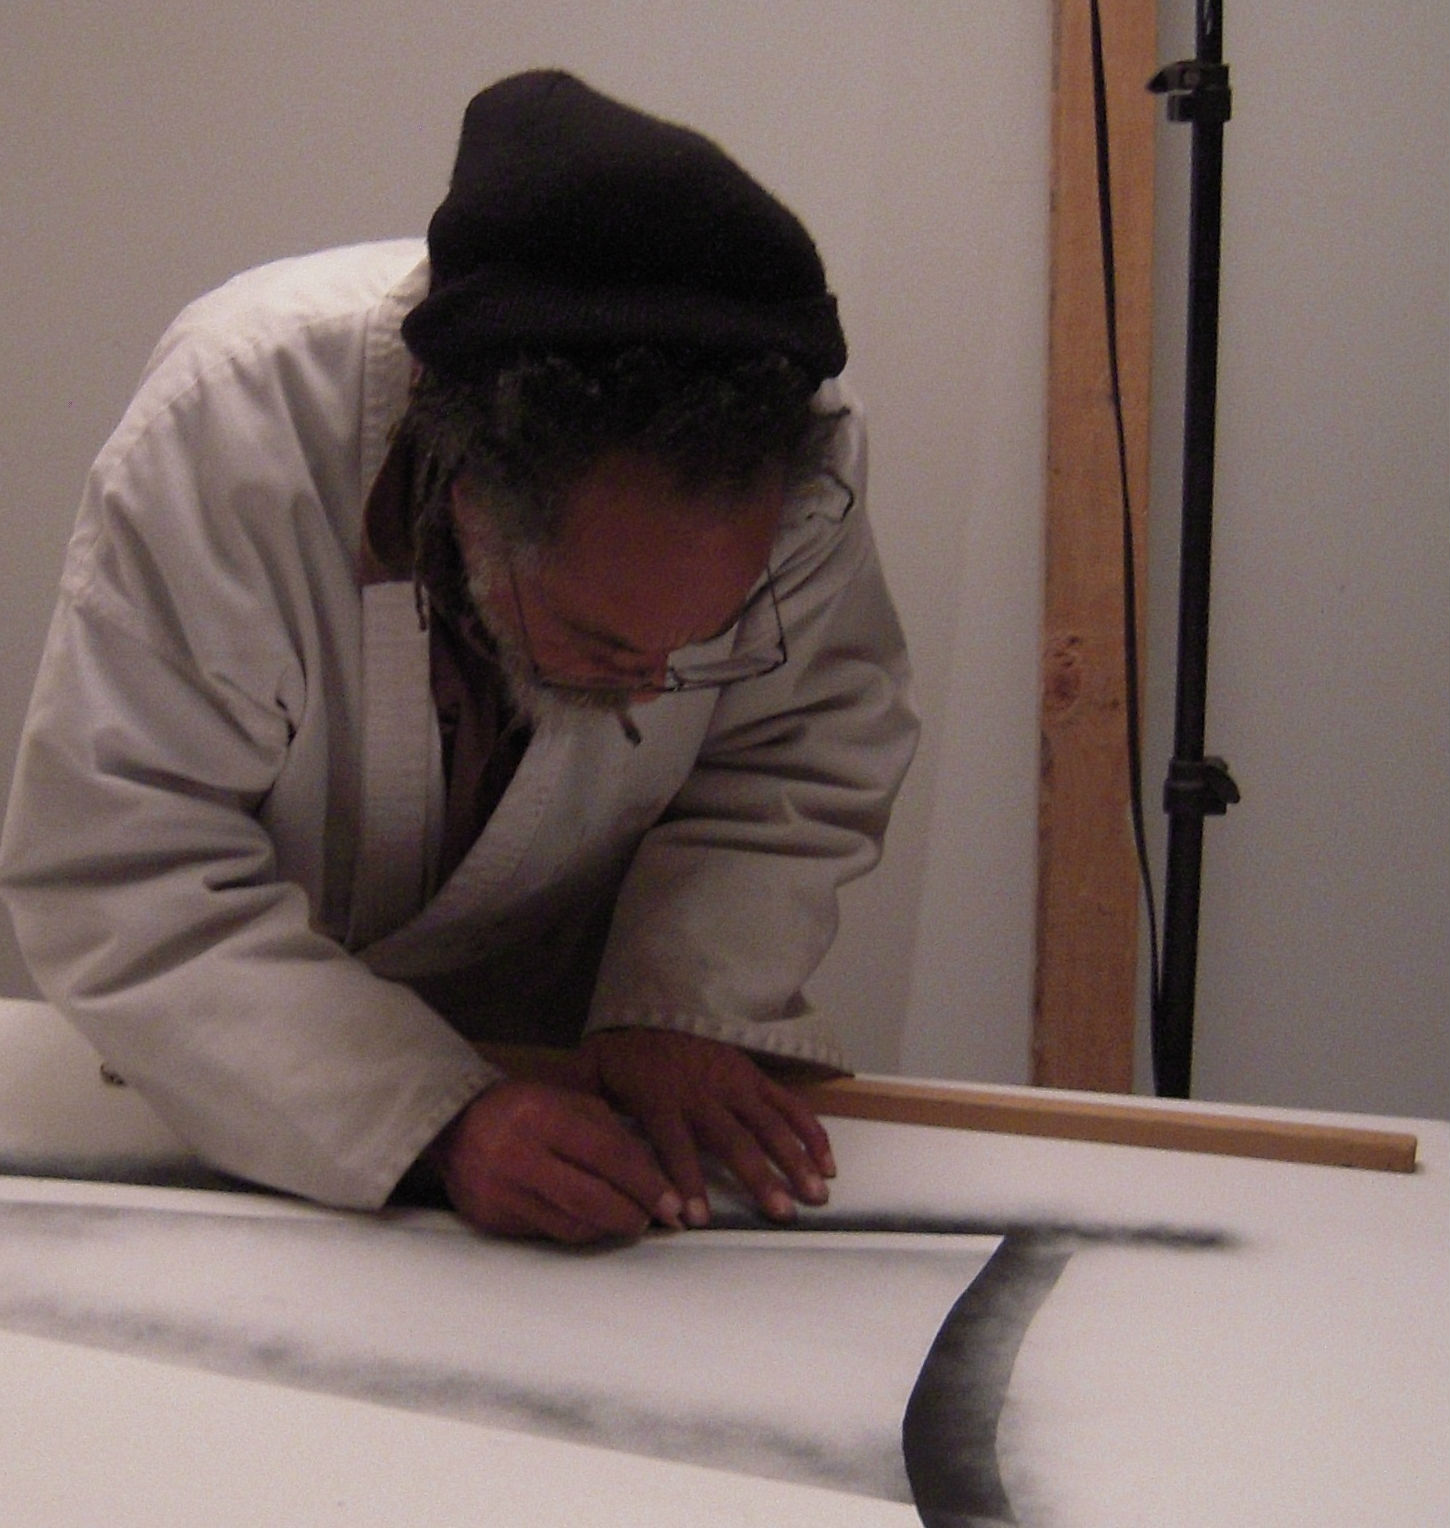 Caption: Artist Samaj works on a painting for his Entry/Dropline series.